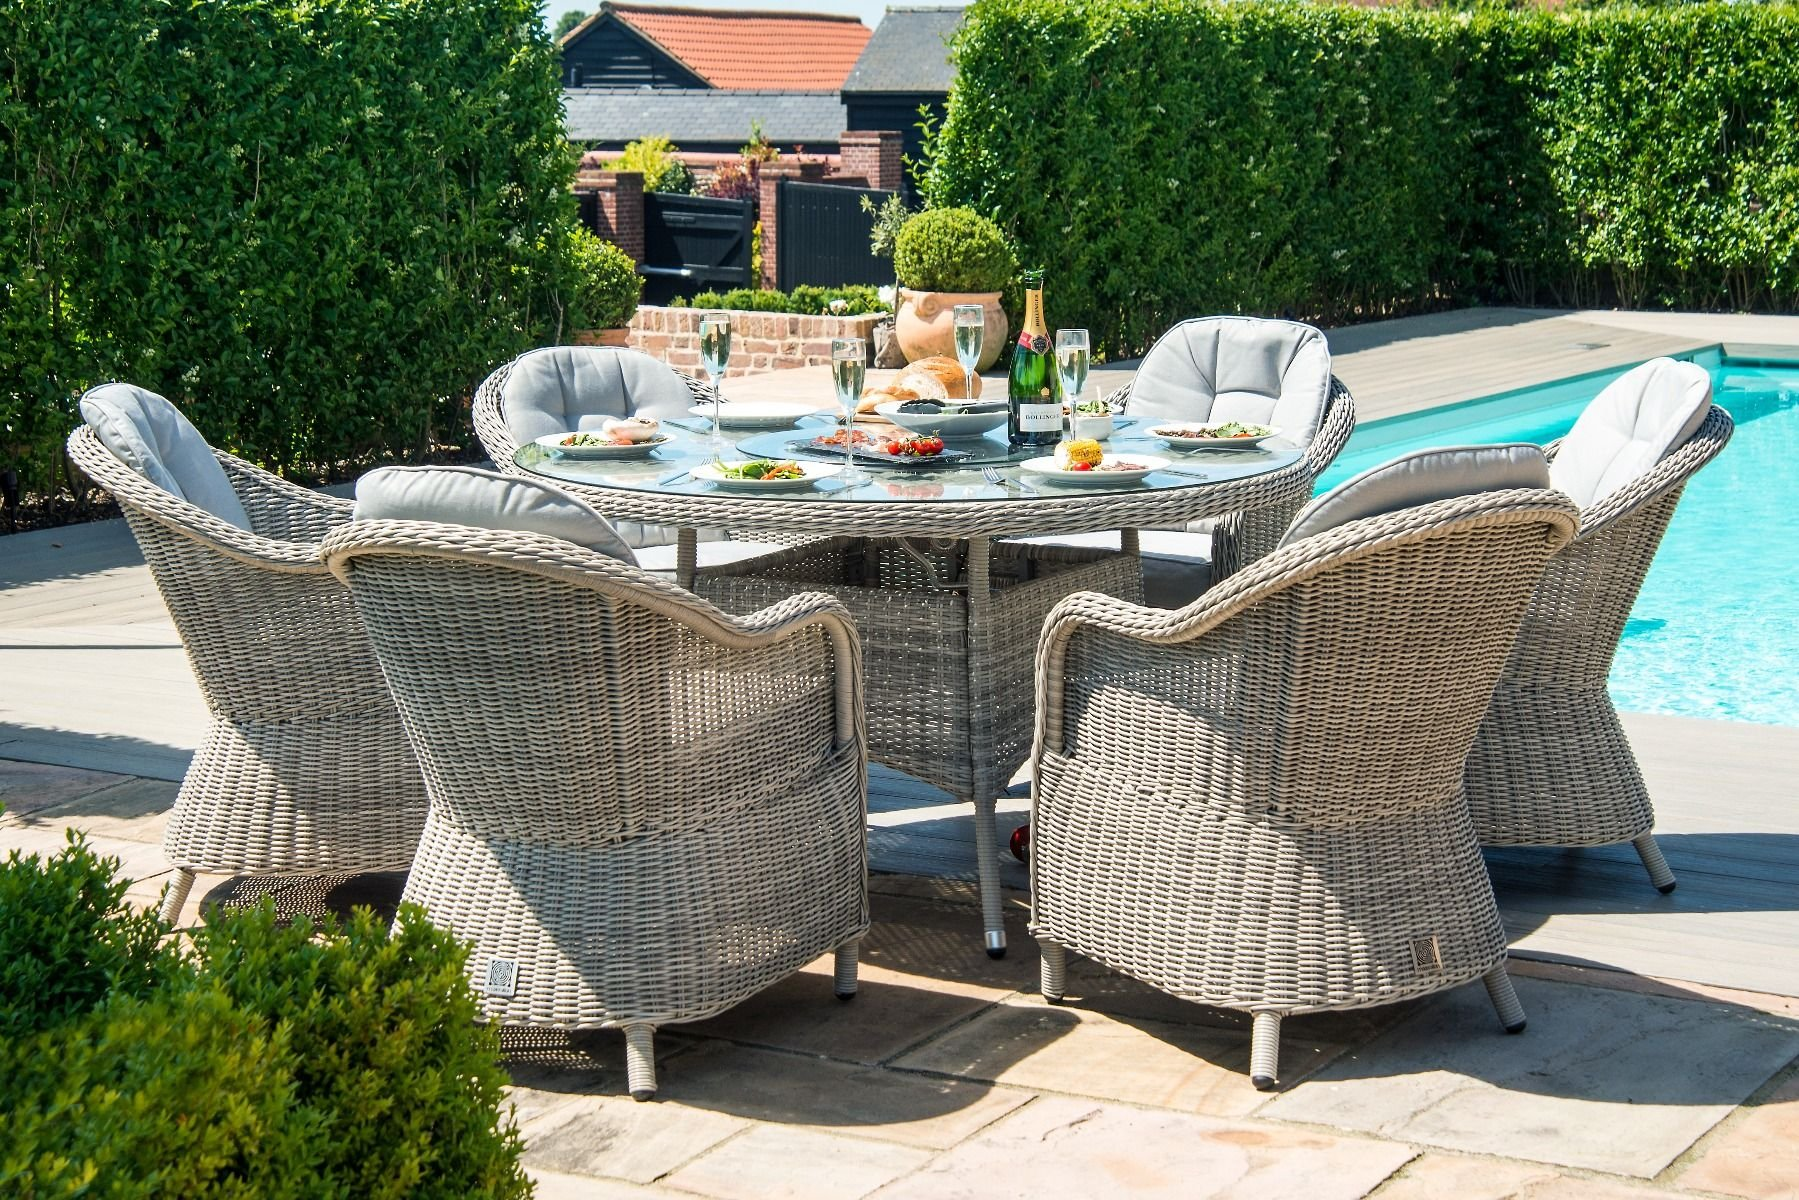 Maze Rattan Oxford 6 Seat Round Fire Pit Dining Set With Heritage Chairs The Clearance Zone - Clearance On Garden Furniture